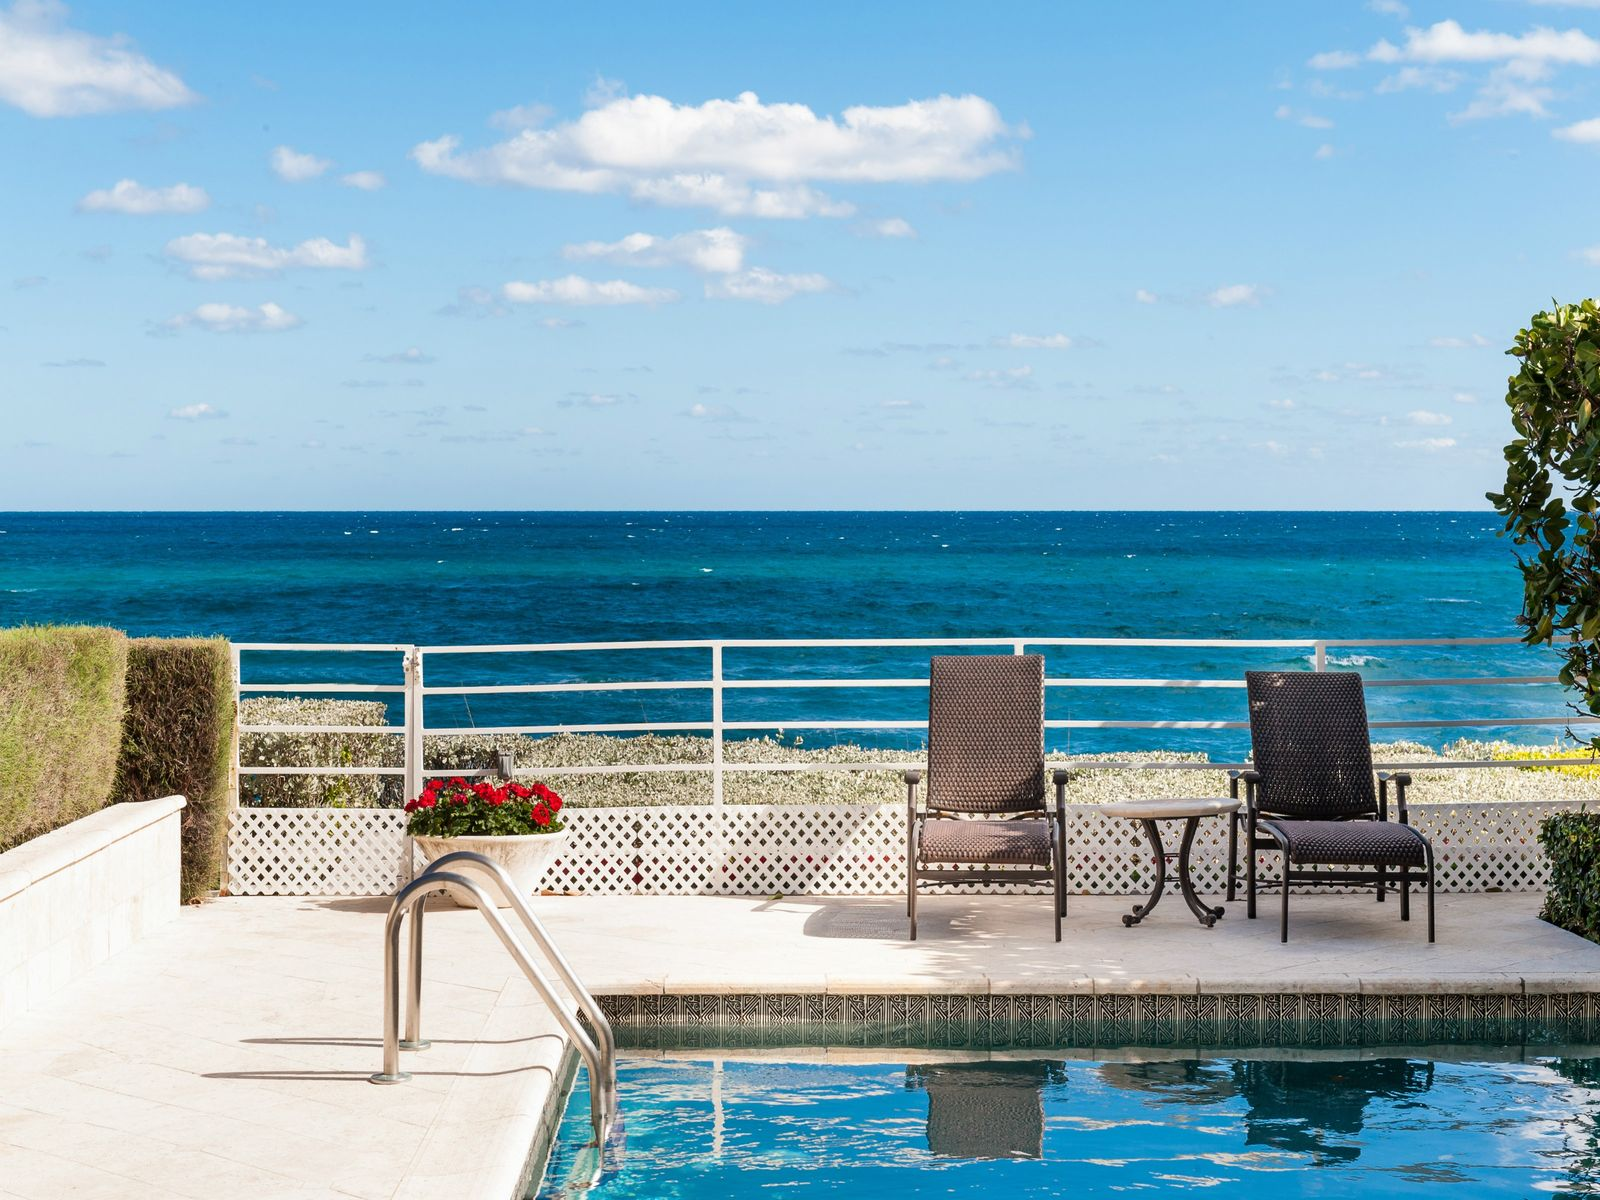 Direct Oceanfront Townhome, Palm Beach FL Townhouse - Palm Beach Real Estate